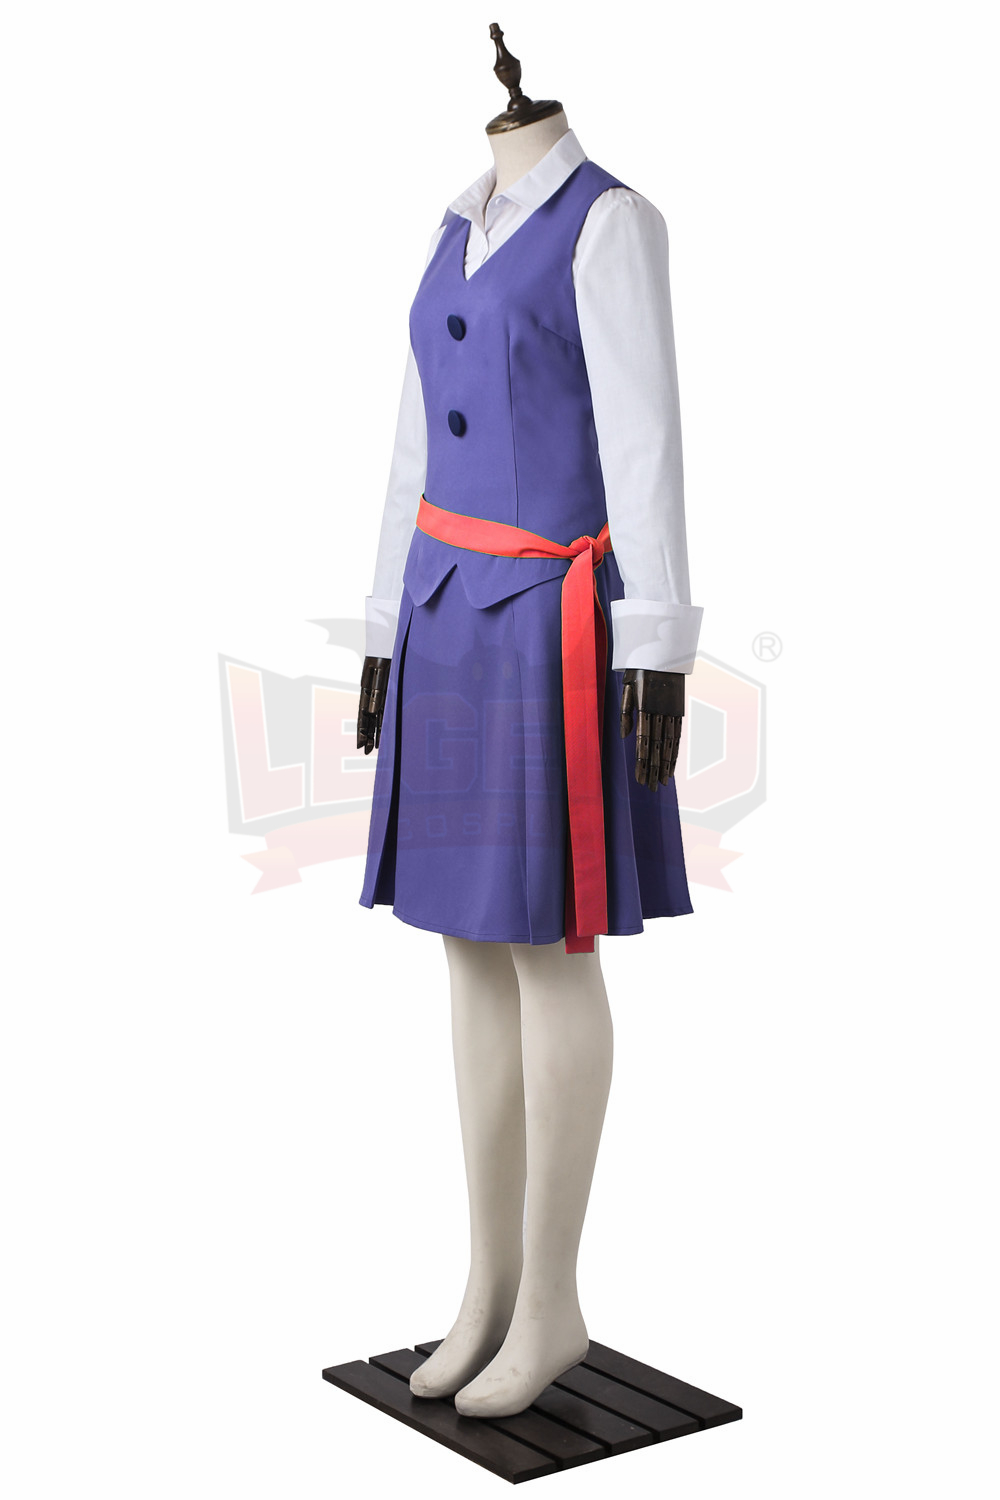 Little Witch Academia Akko Kagari Dress Outfit Halloween cosplay halloween women costume with red belt